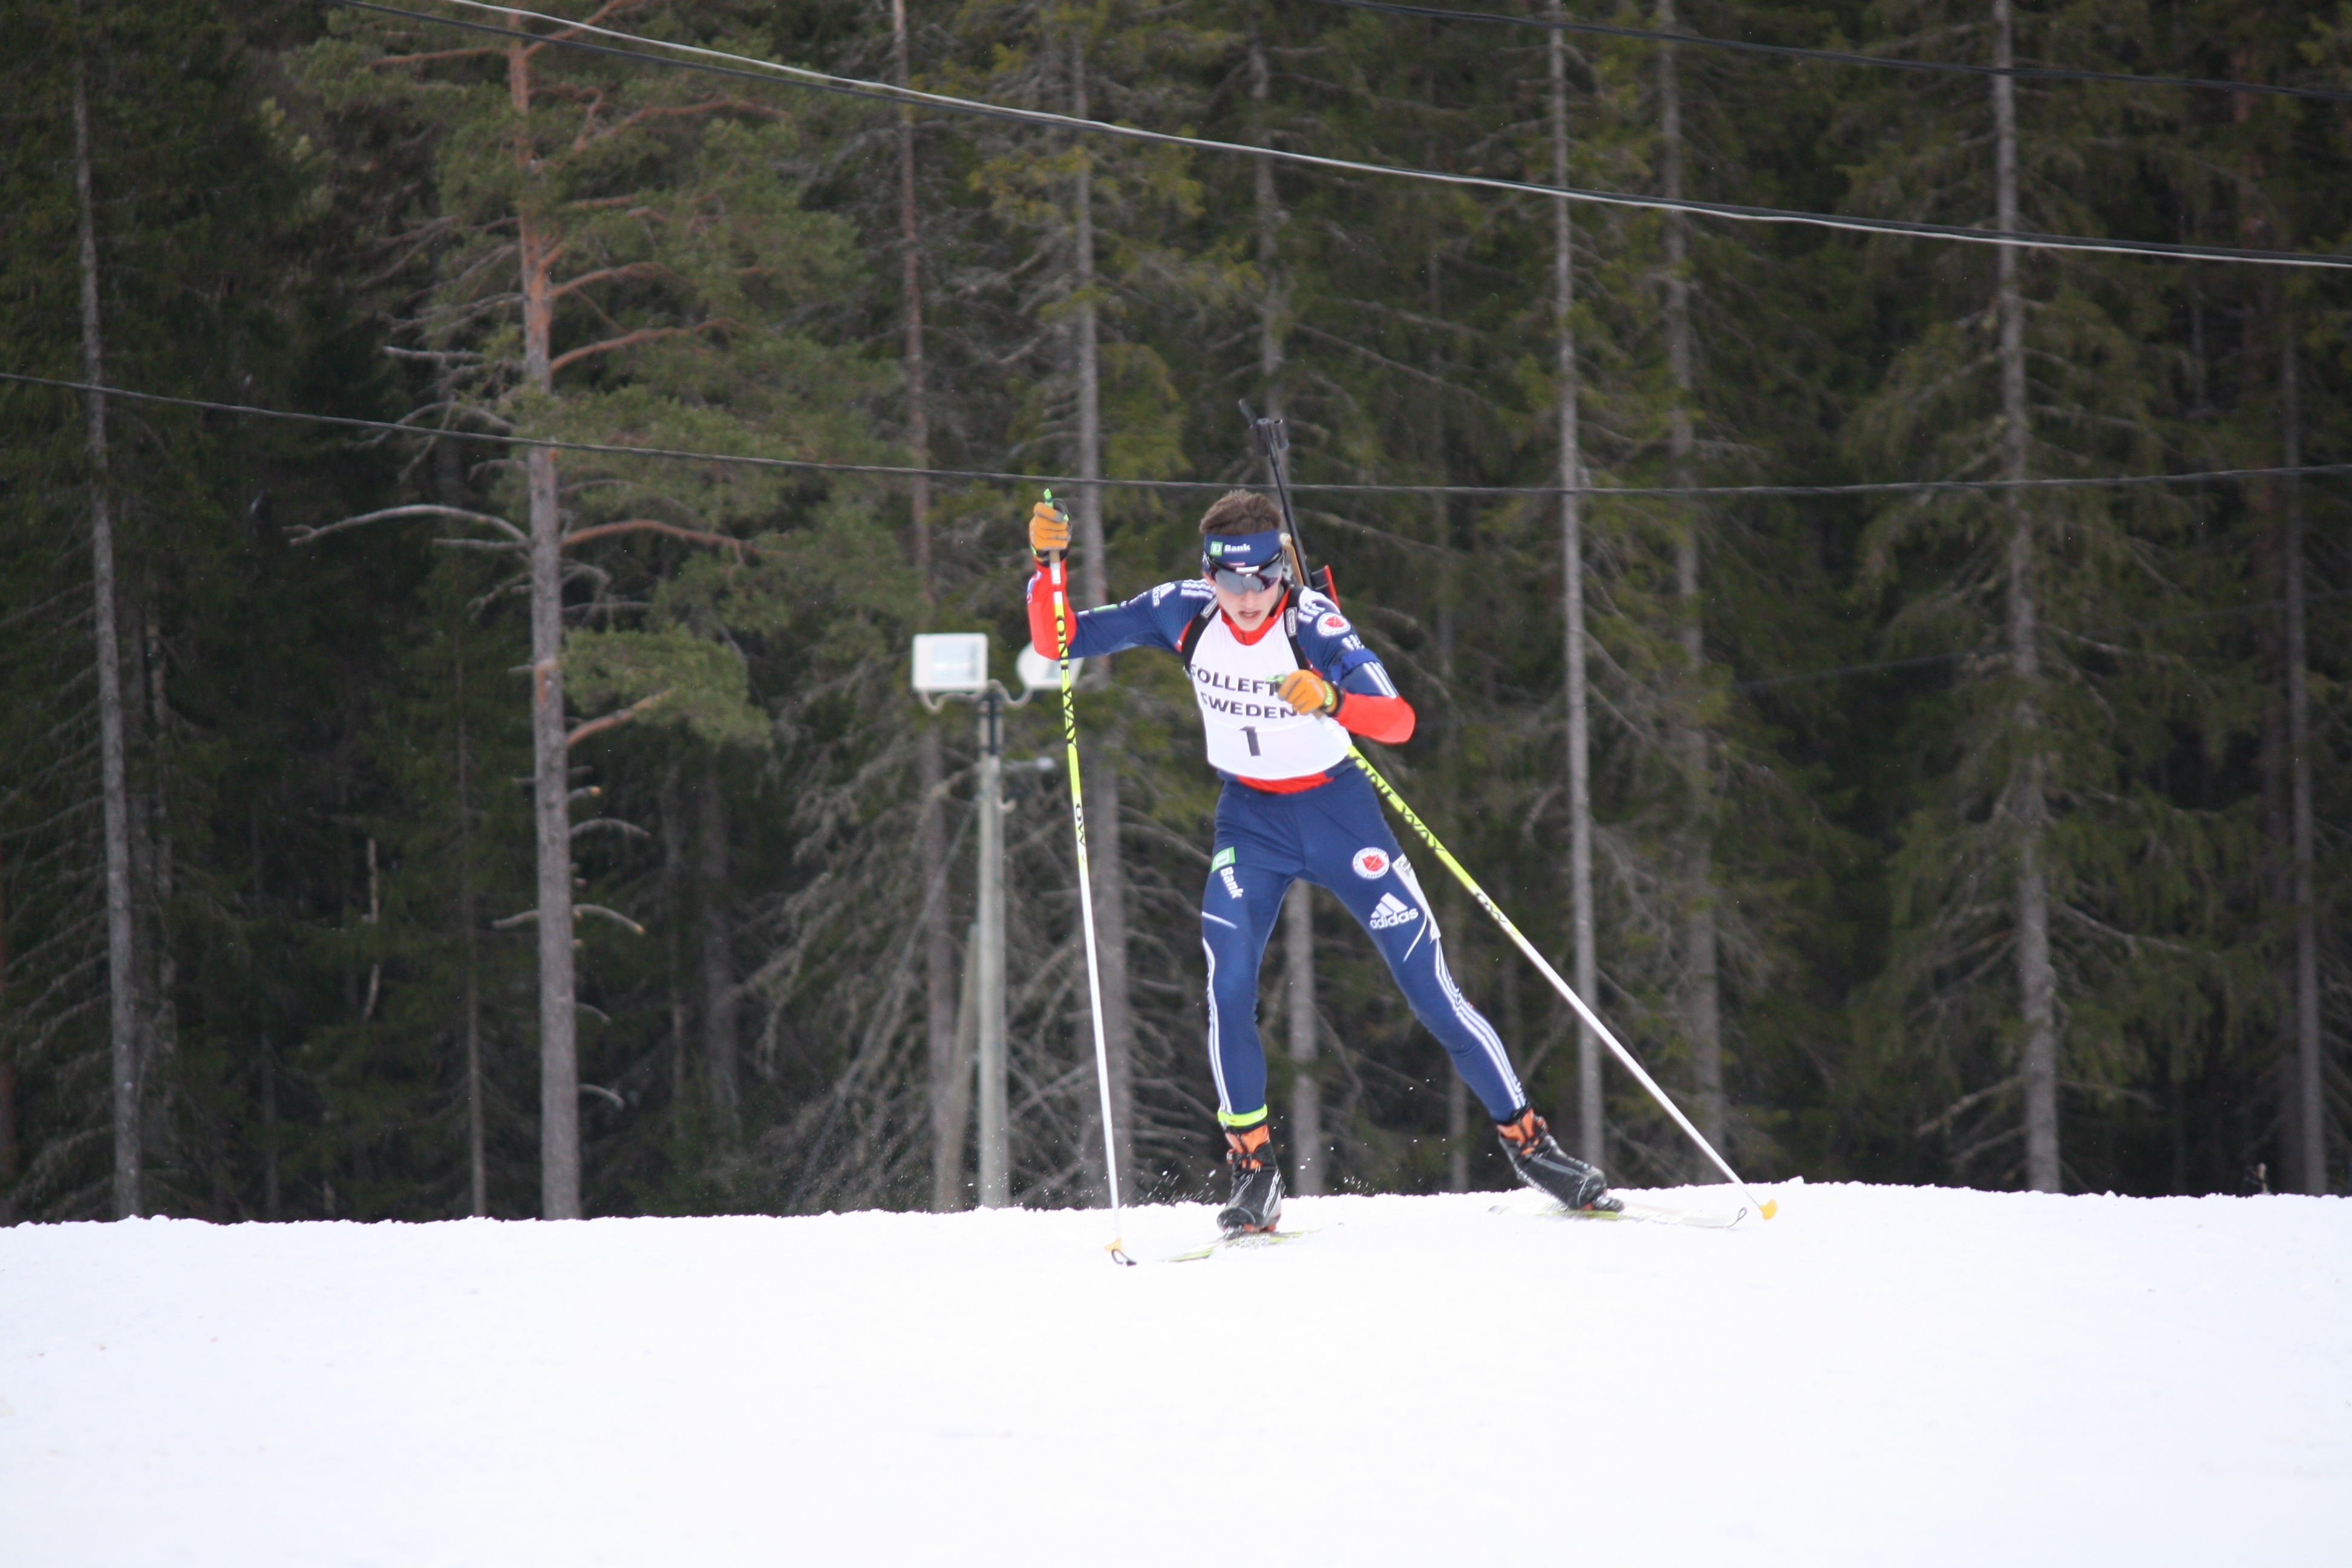 https://fasterskier.com/wp-content/blogs.dir/1/files/2012/04/sean-doherty-swedish-champs.jpg